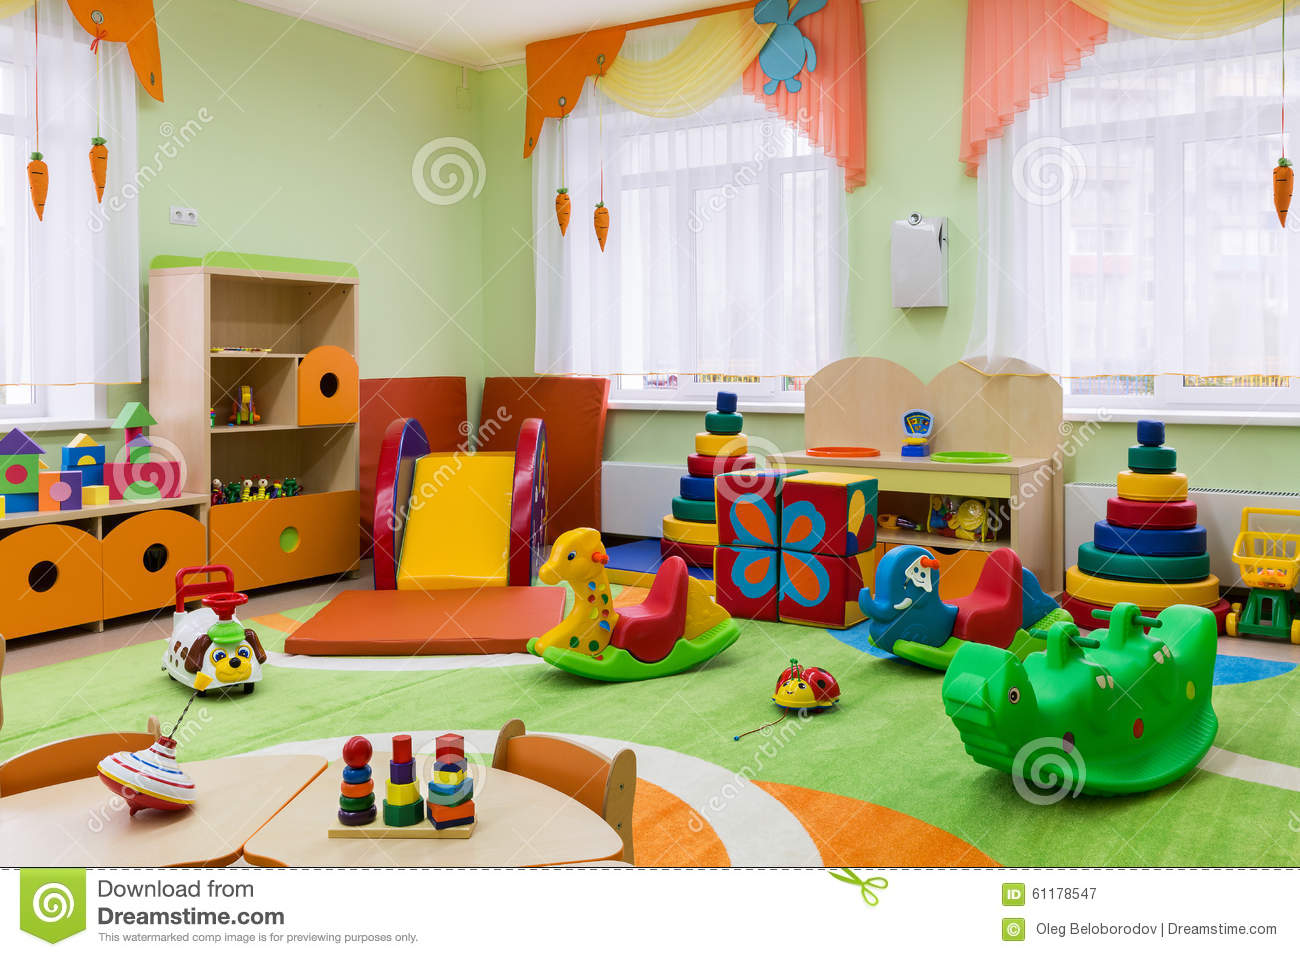 Game Room In The Kindergarten Stock Image   Image of childrens     Game room in the kindergarten